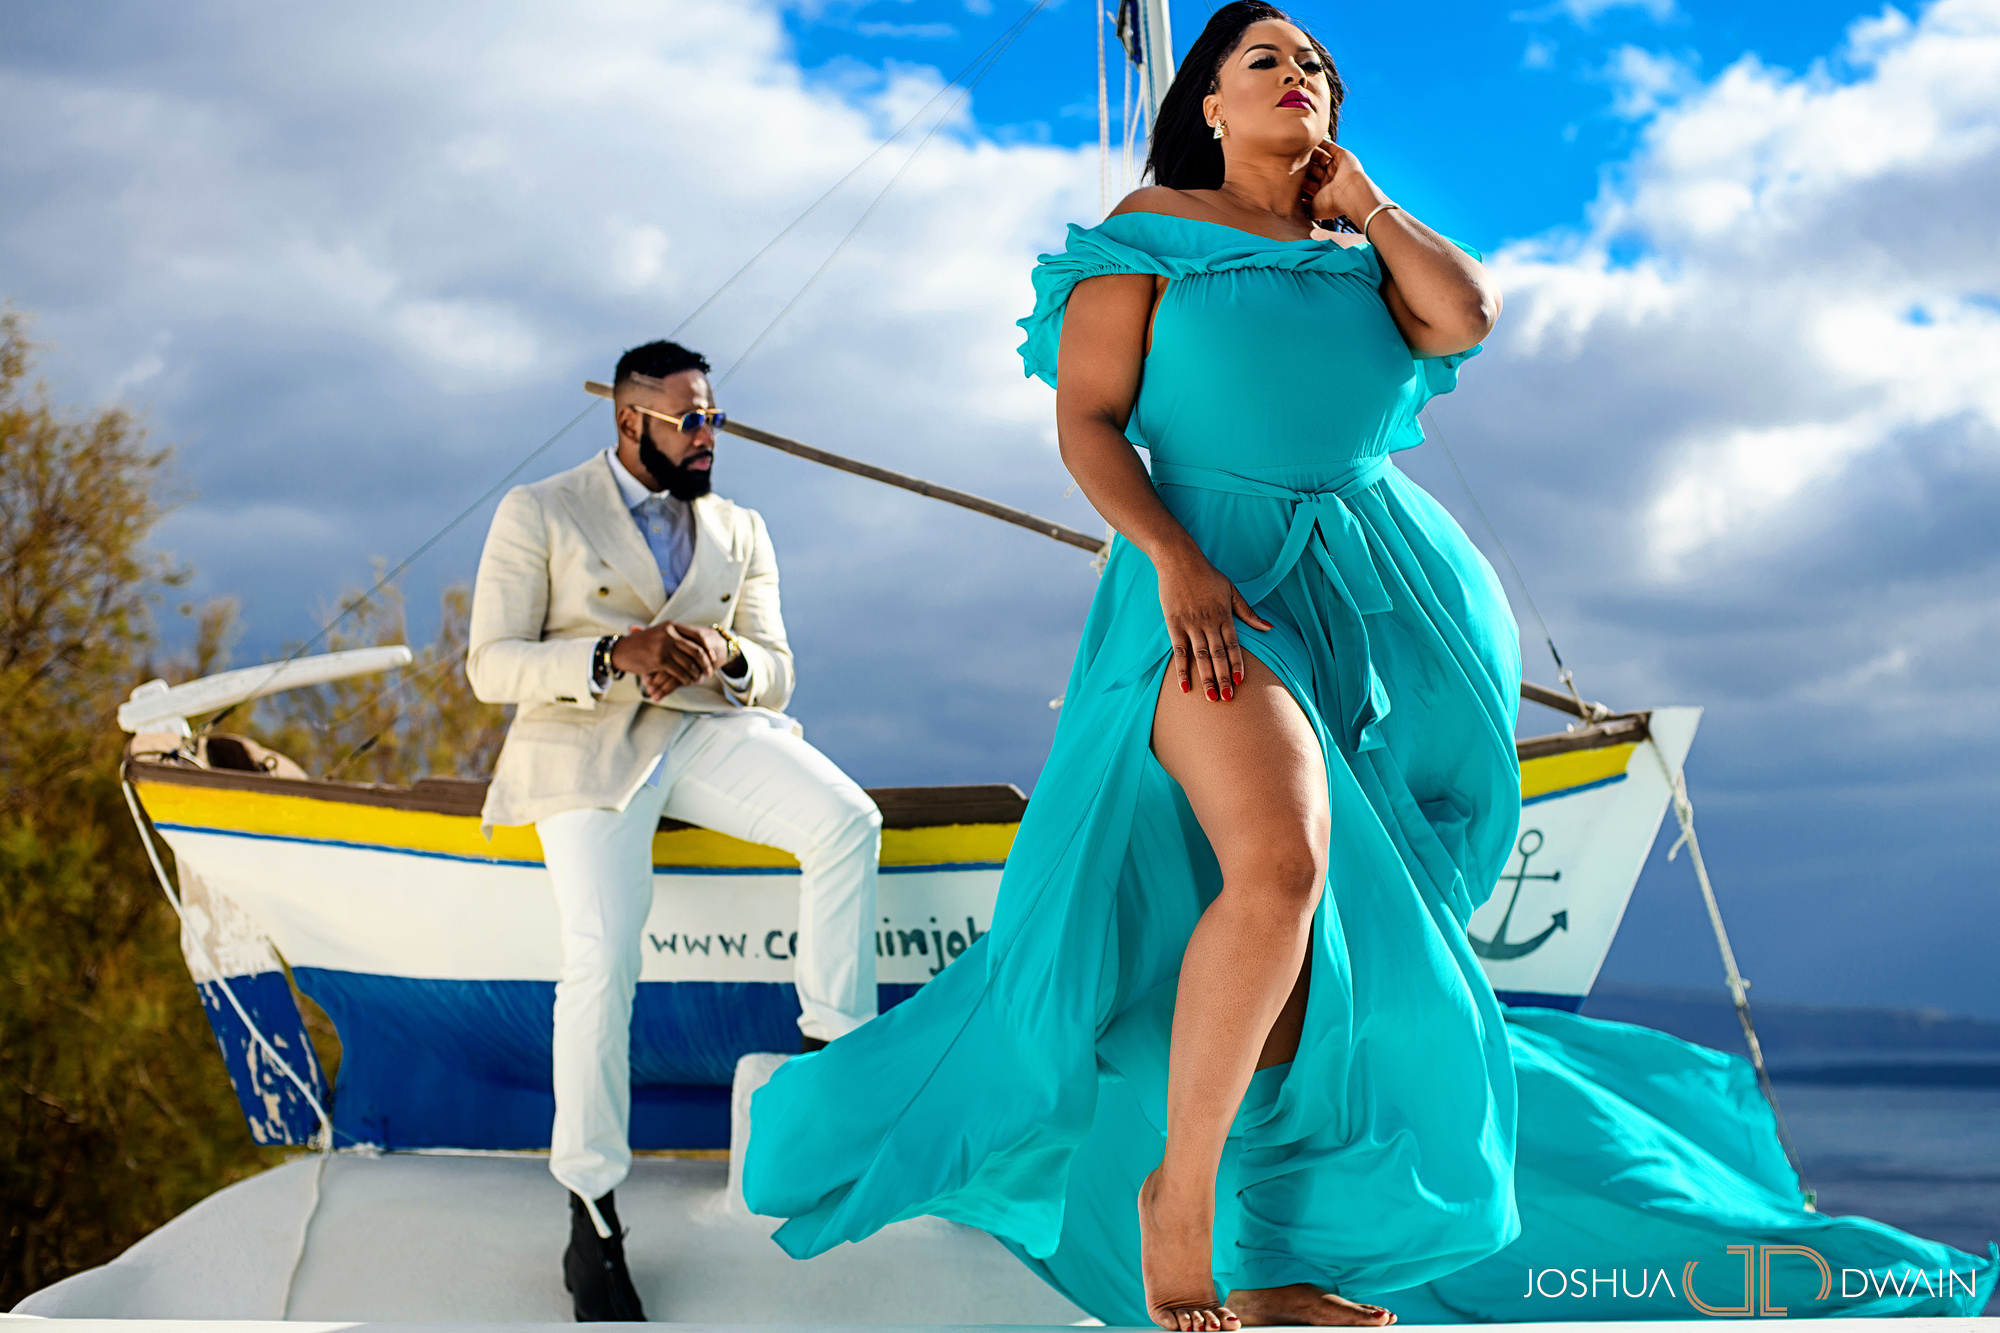 ekene-issac-24-santorini-oia-thira-greece-wedding-engagement-photos-african-american-destination-photographer-joshua-dwain